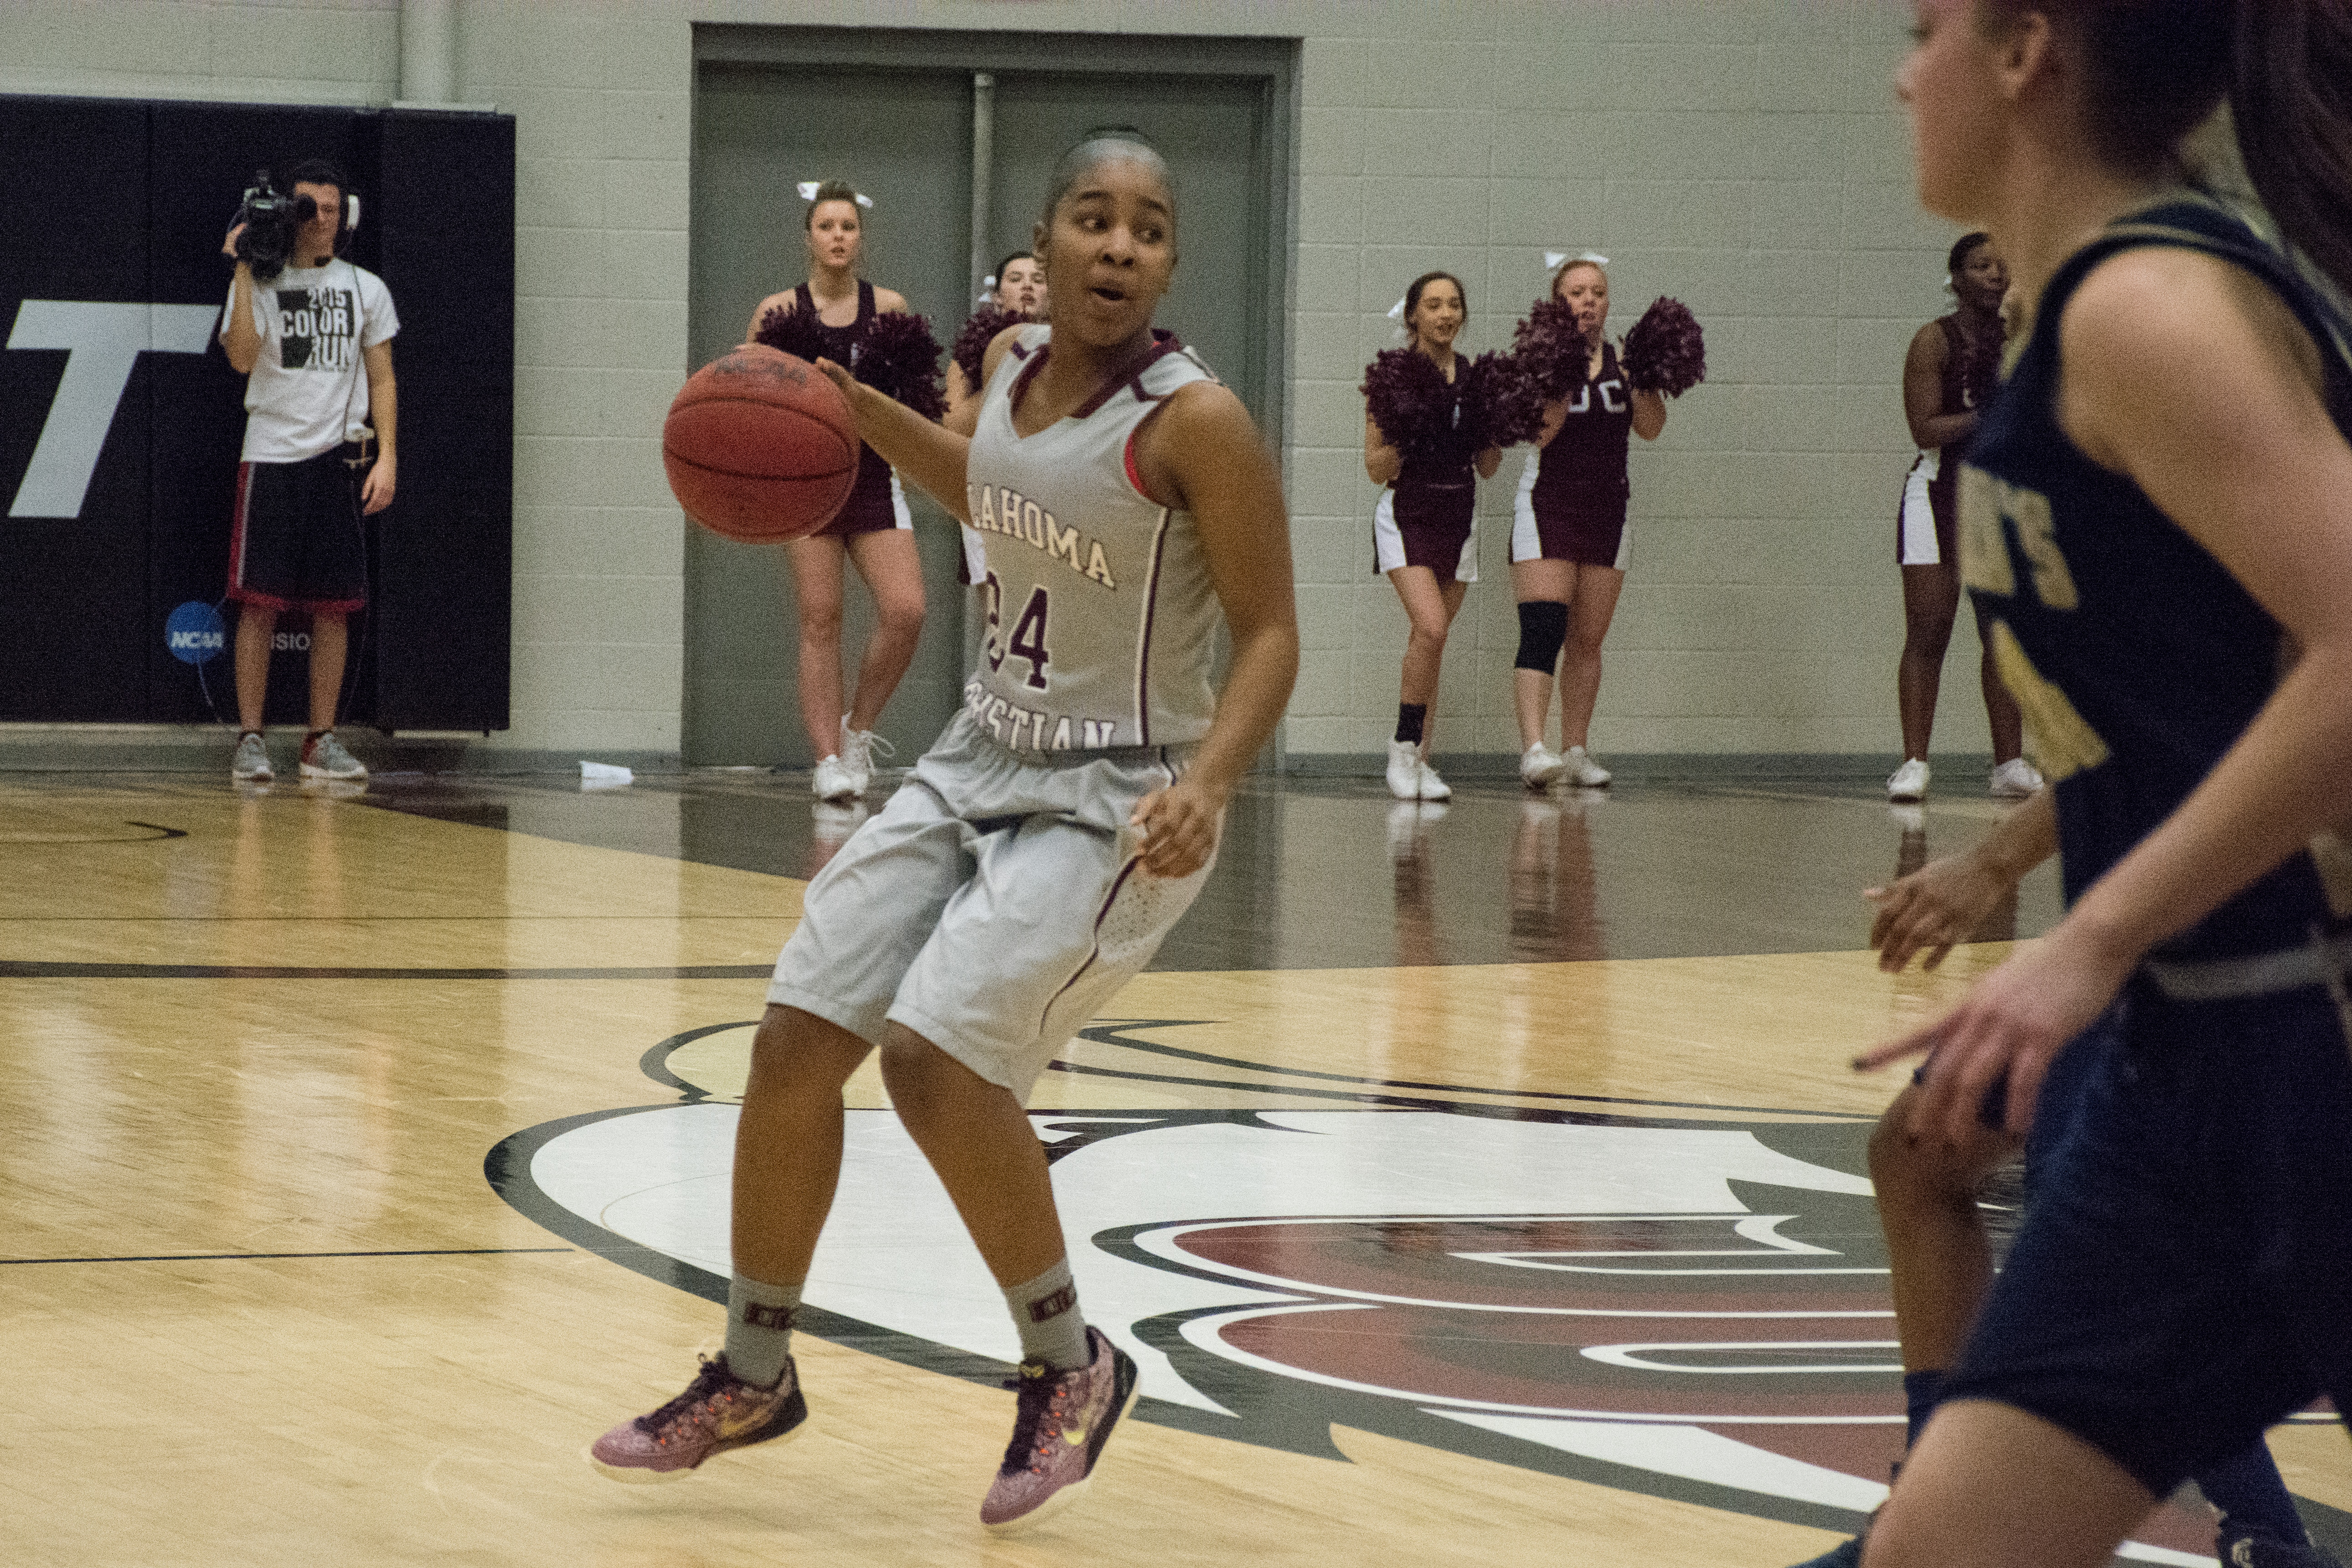 Daisha Gonzaque sets up a play as the Lady Eagles battled St. Edward's on Feb. 25. Photo by Abby Bellow.